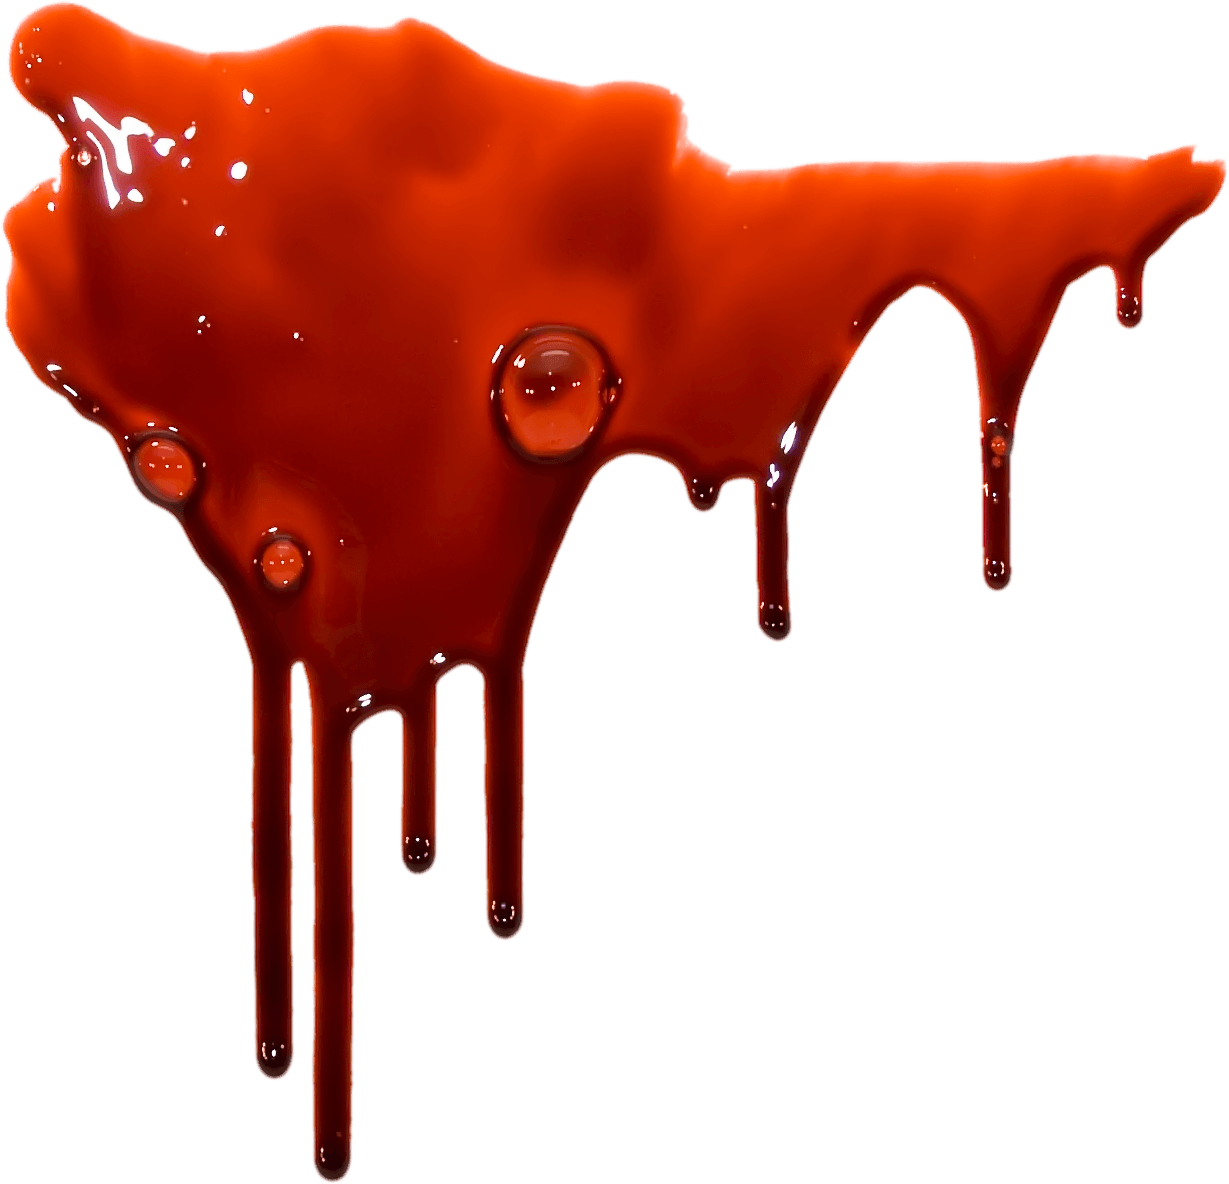 Bullet hole blood png. Download image hq freepngimg